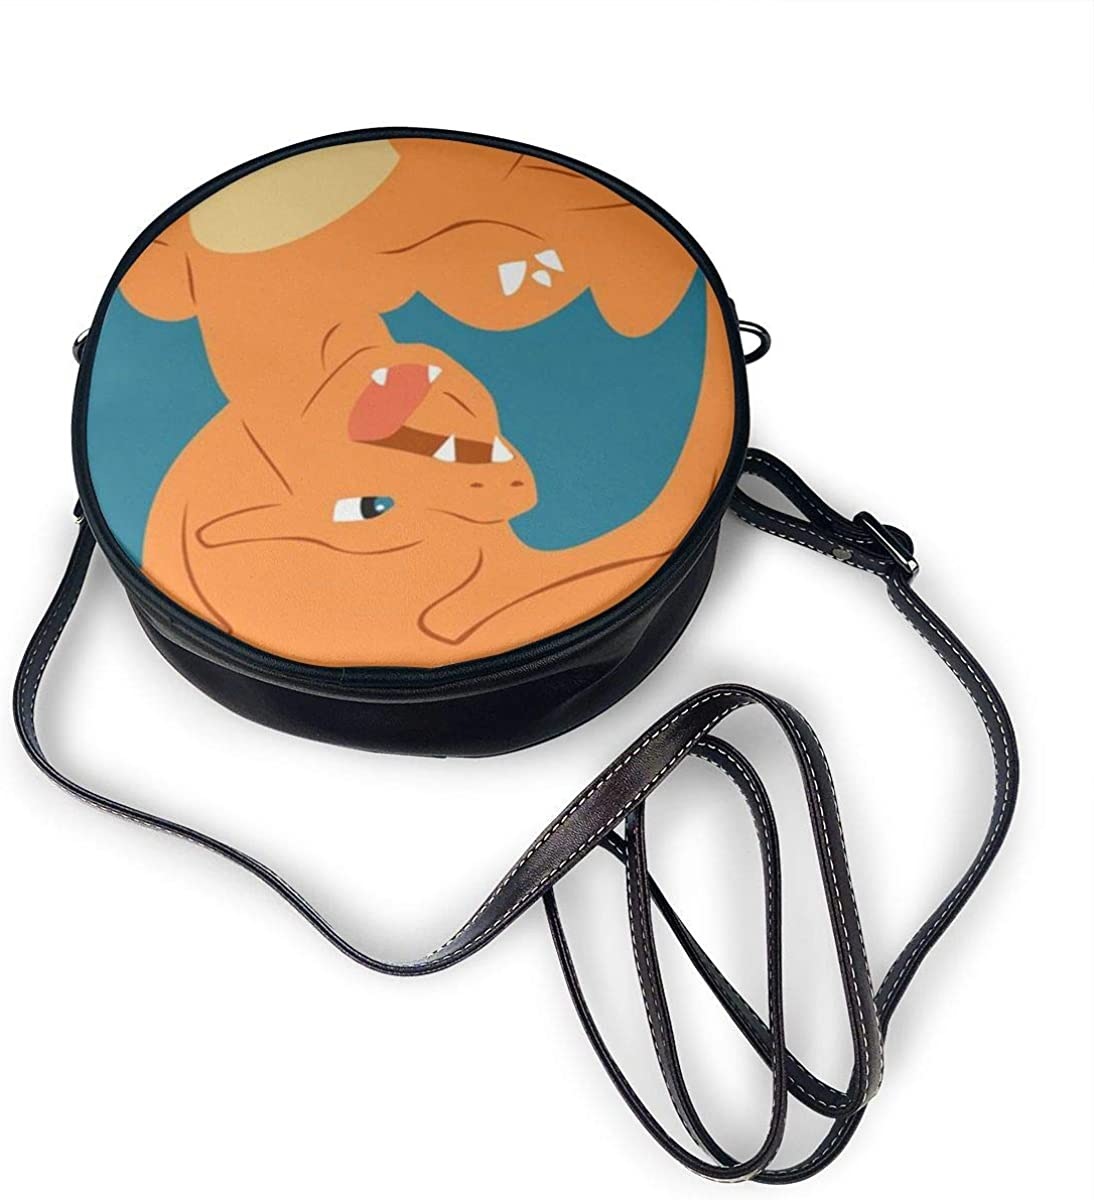 Charizard Zipper Shoulder Bag For Casual Travel Trendy Round ...